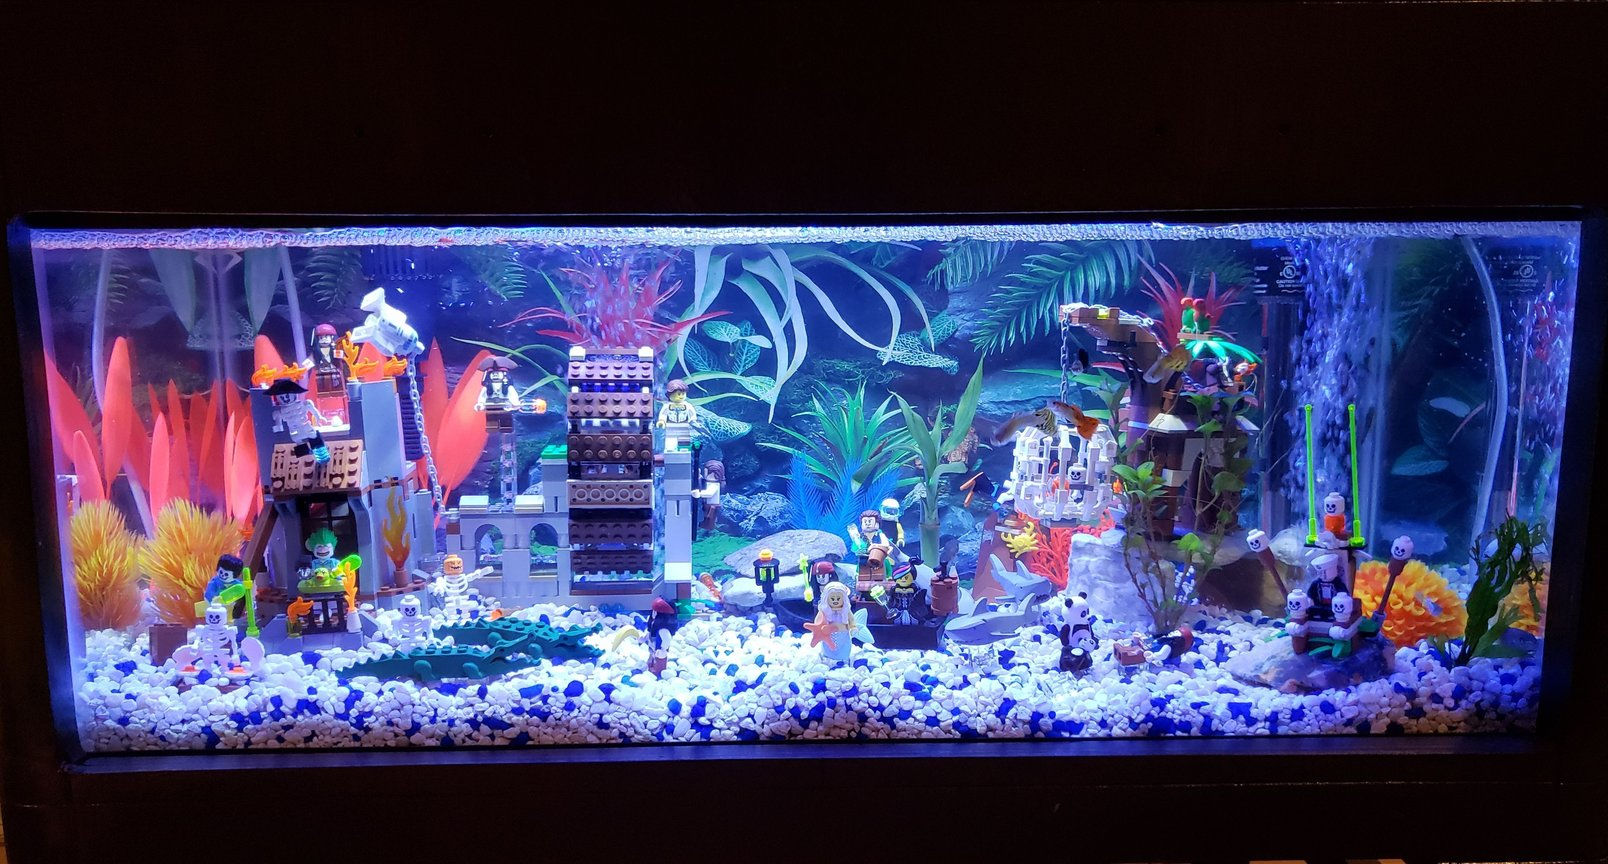 20 gallons freshwater fish tank (mostly fish and non-living decorations) - Lego tank